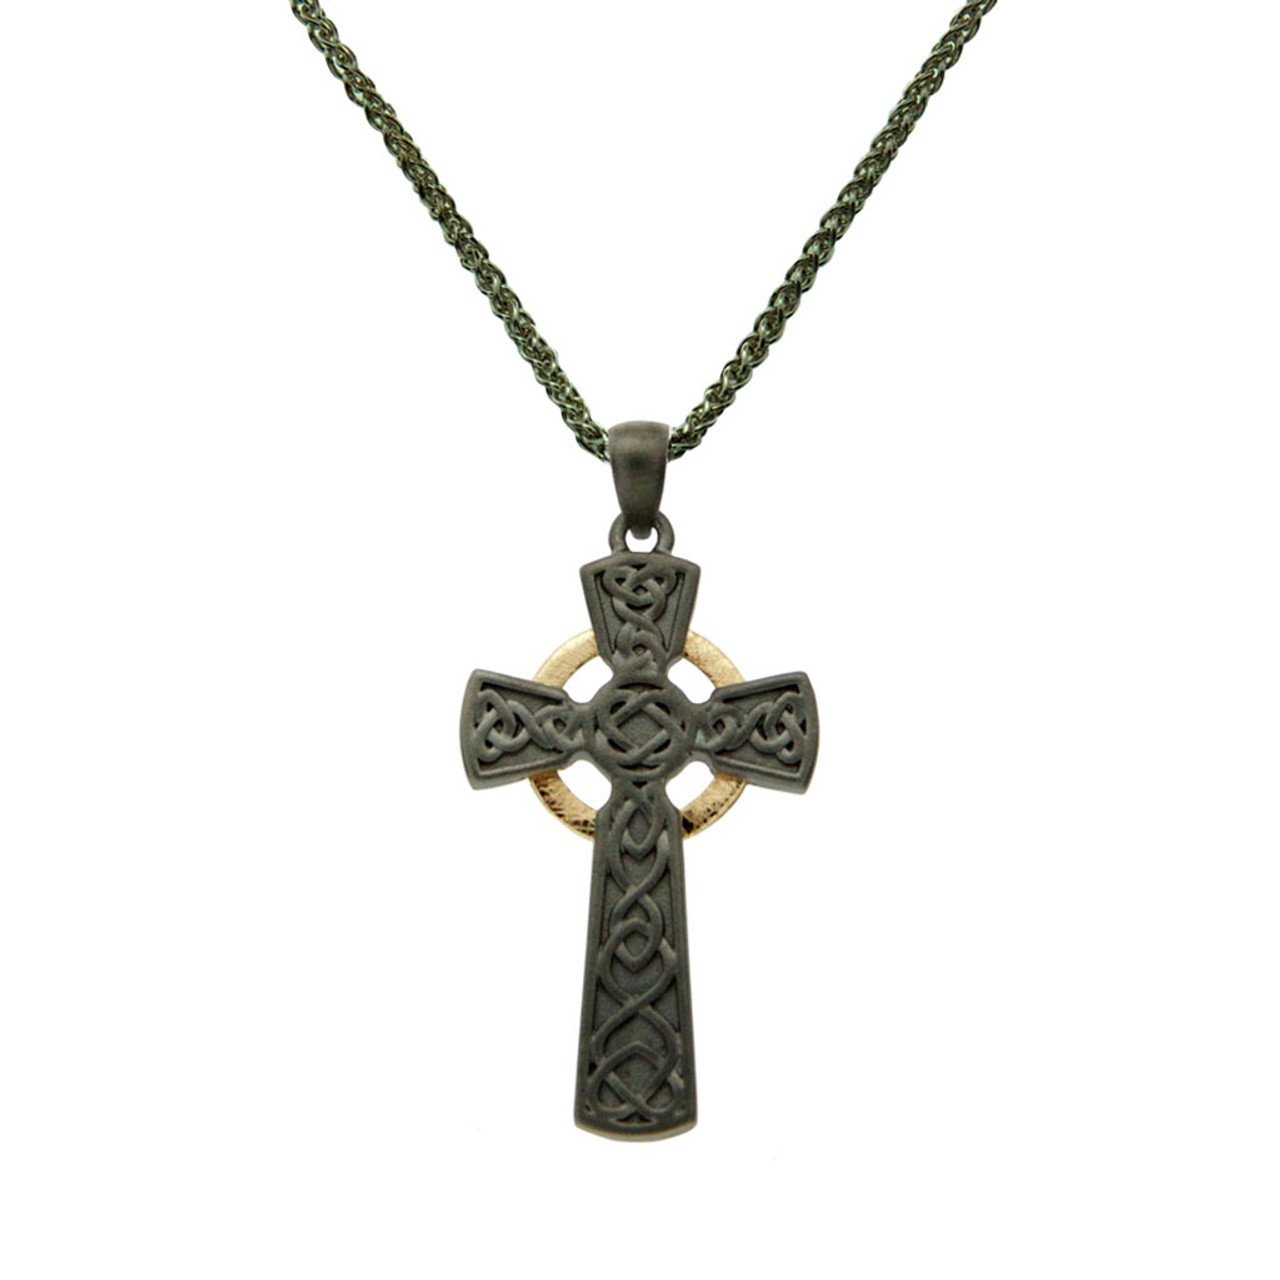 necklace celtic cross necklec marcasite sterling silver marcastie